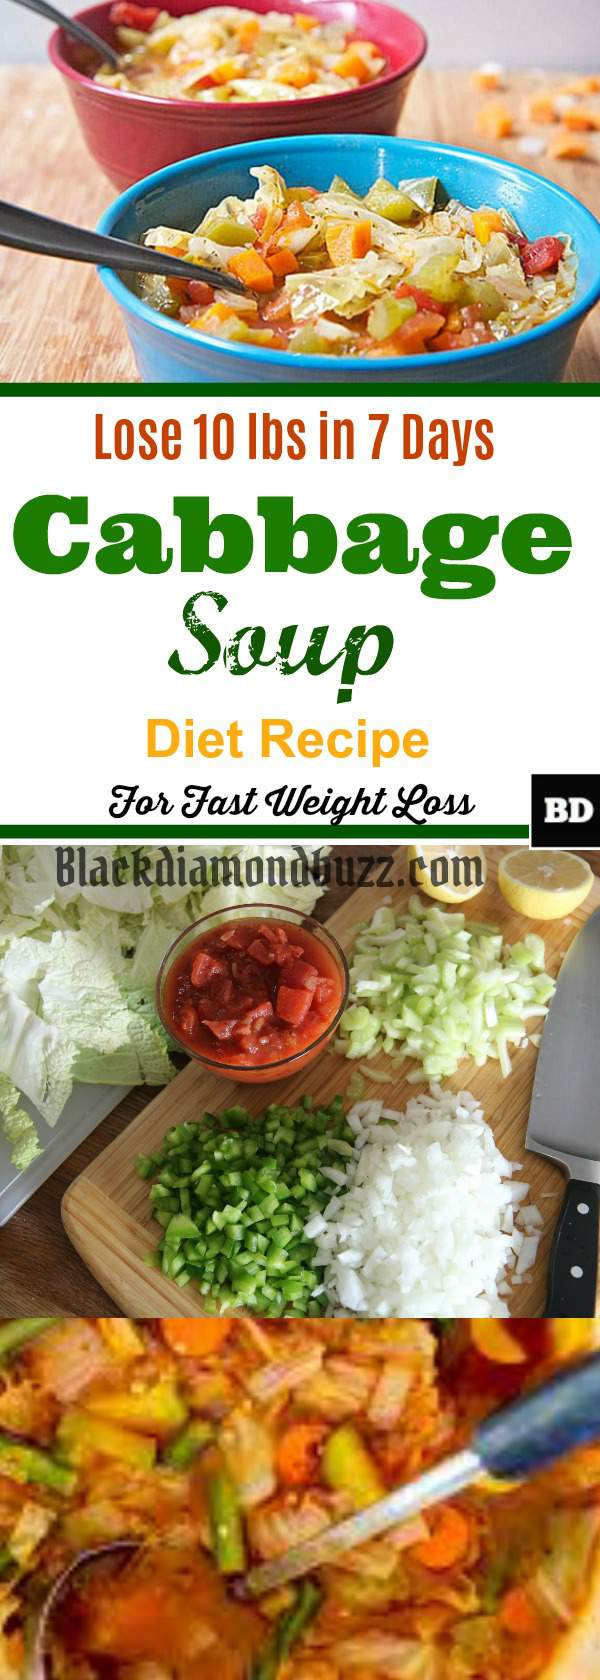 miracle cabbage soup